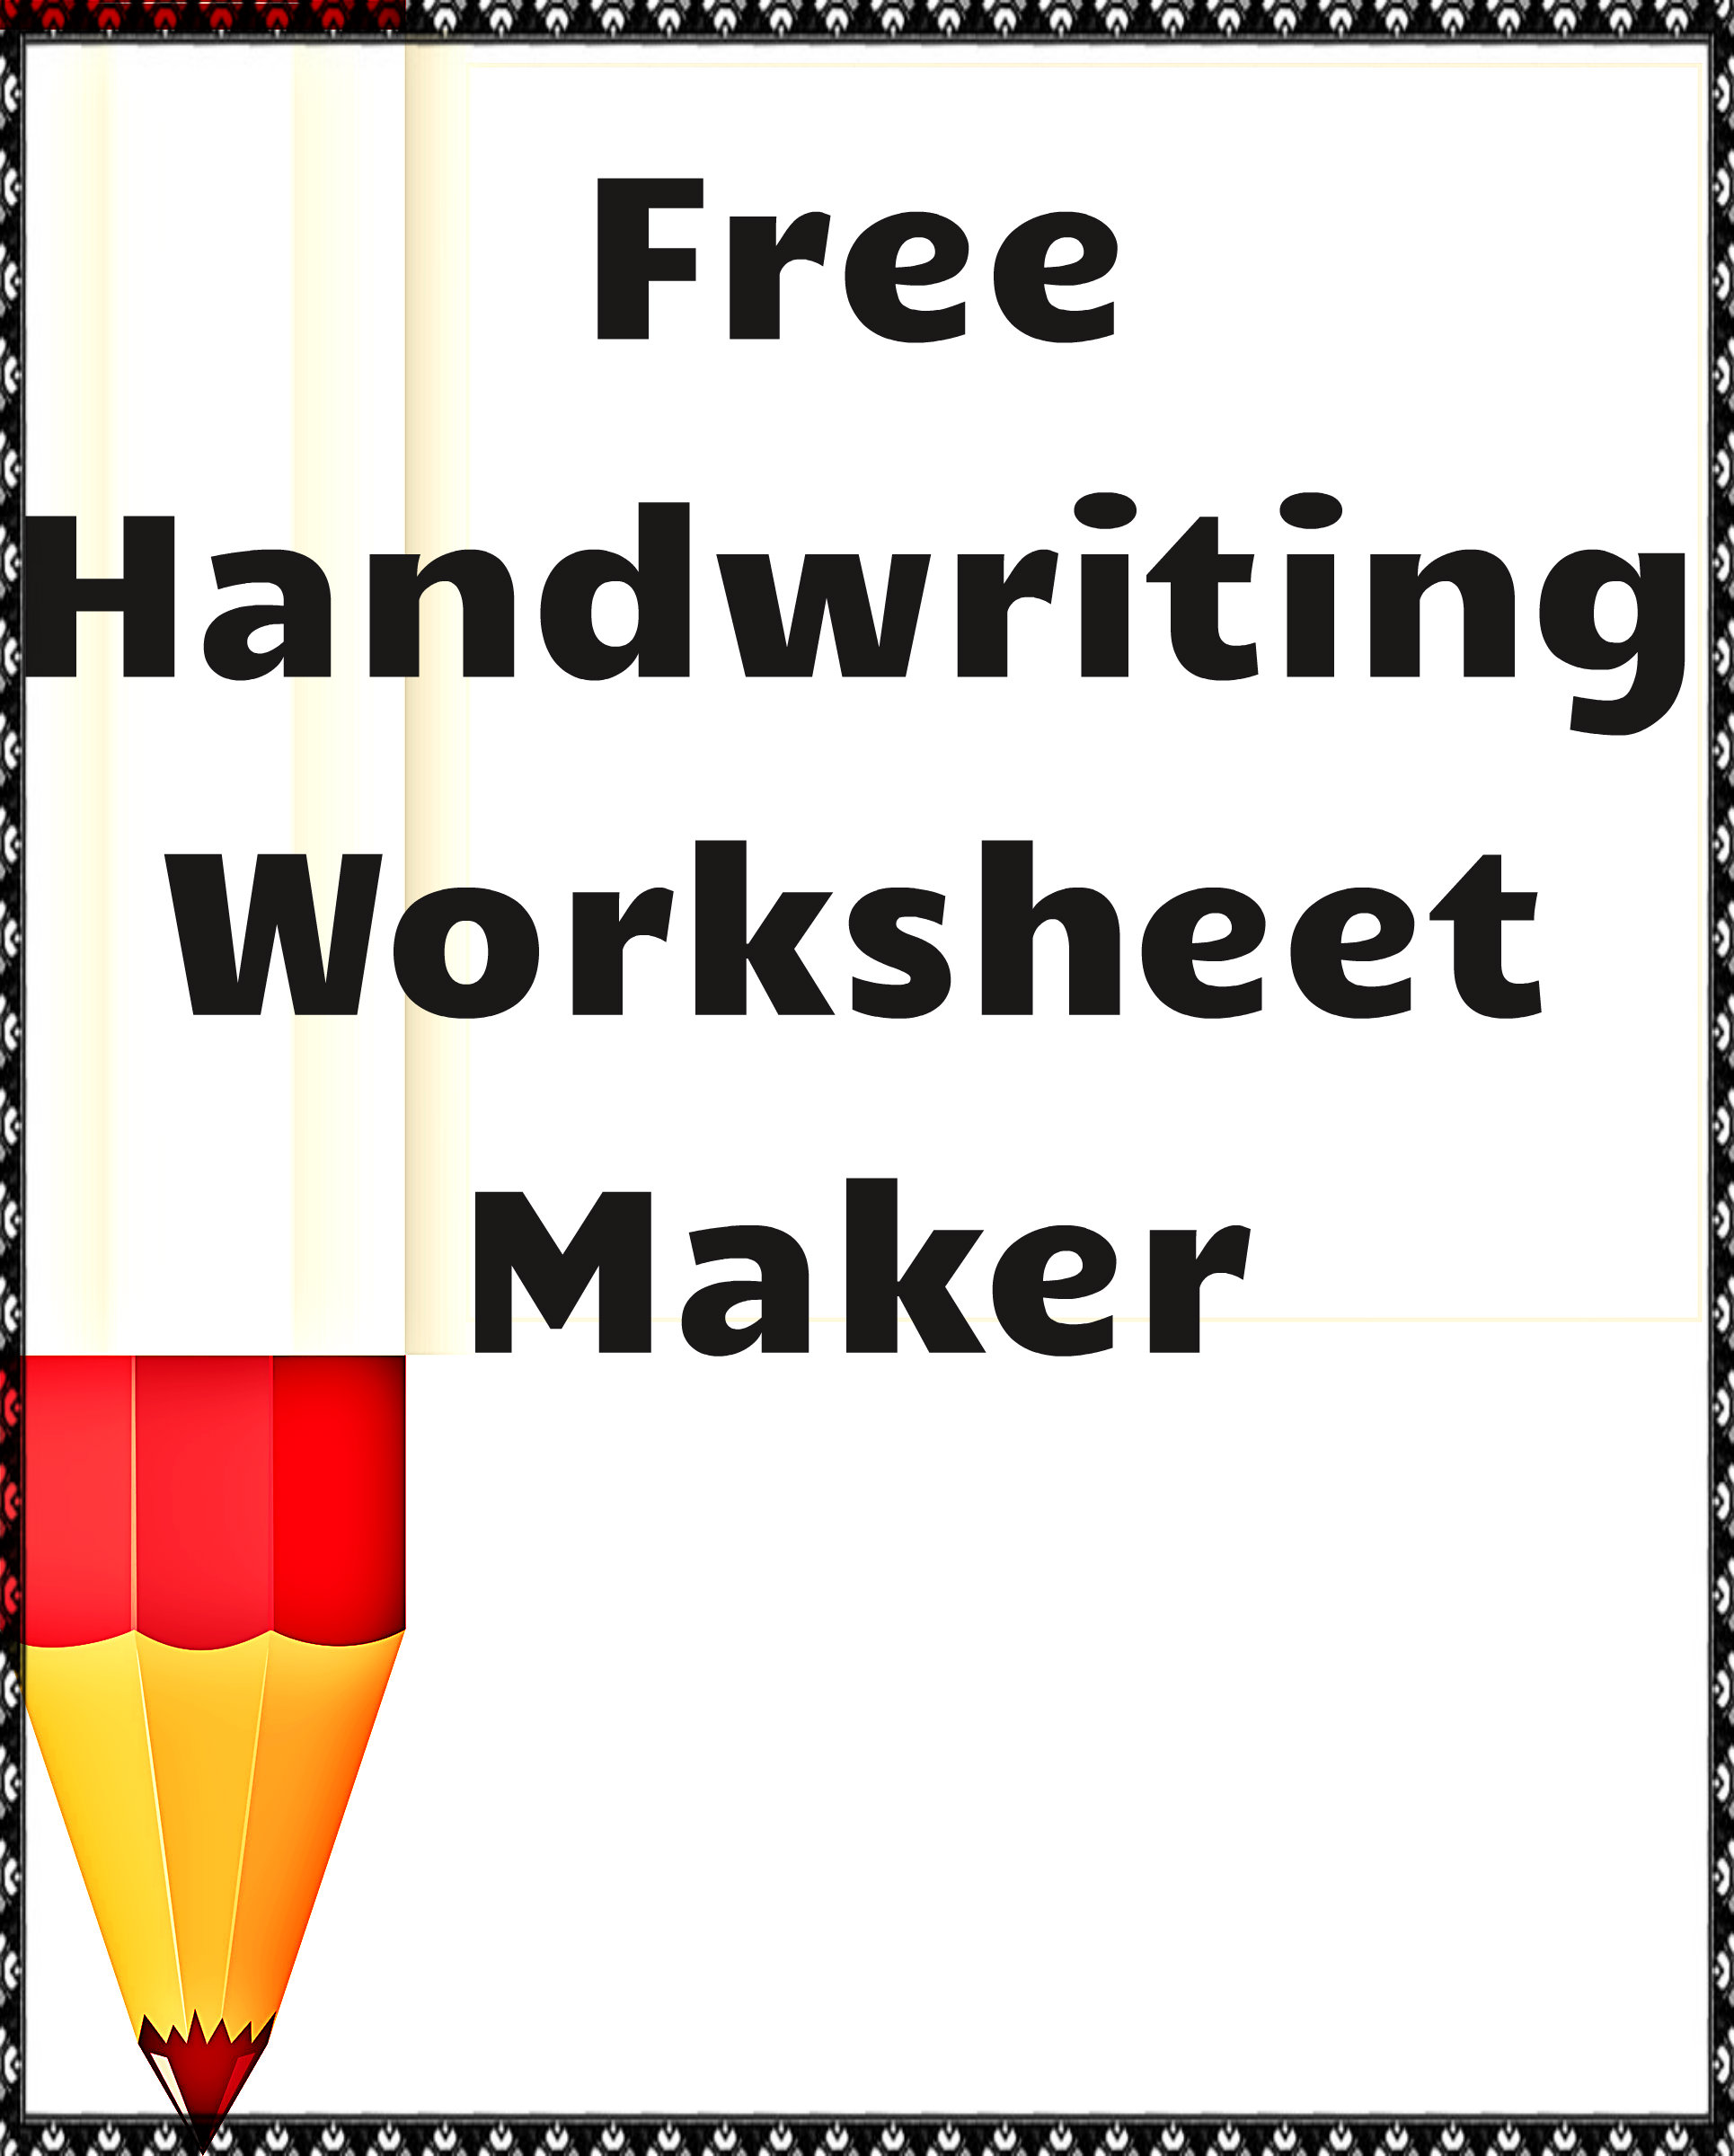 {Handwriting Worksheet Maker Free Classroom Tools – Free Handwriting Worksheet Maker